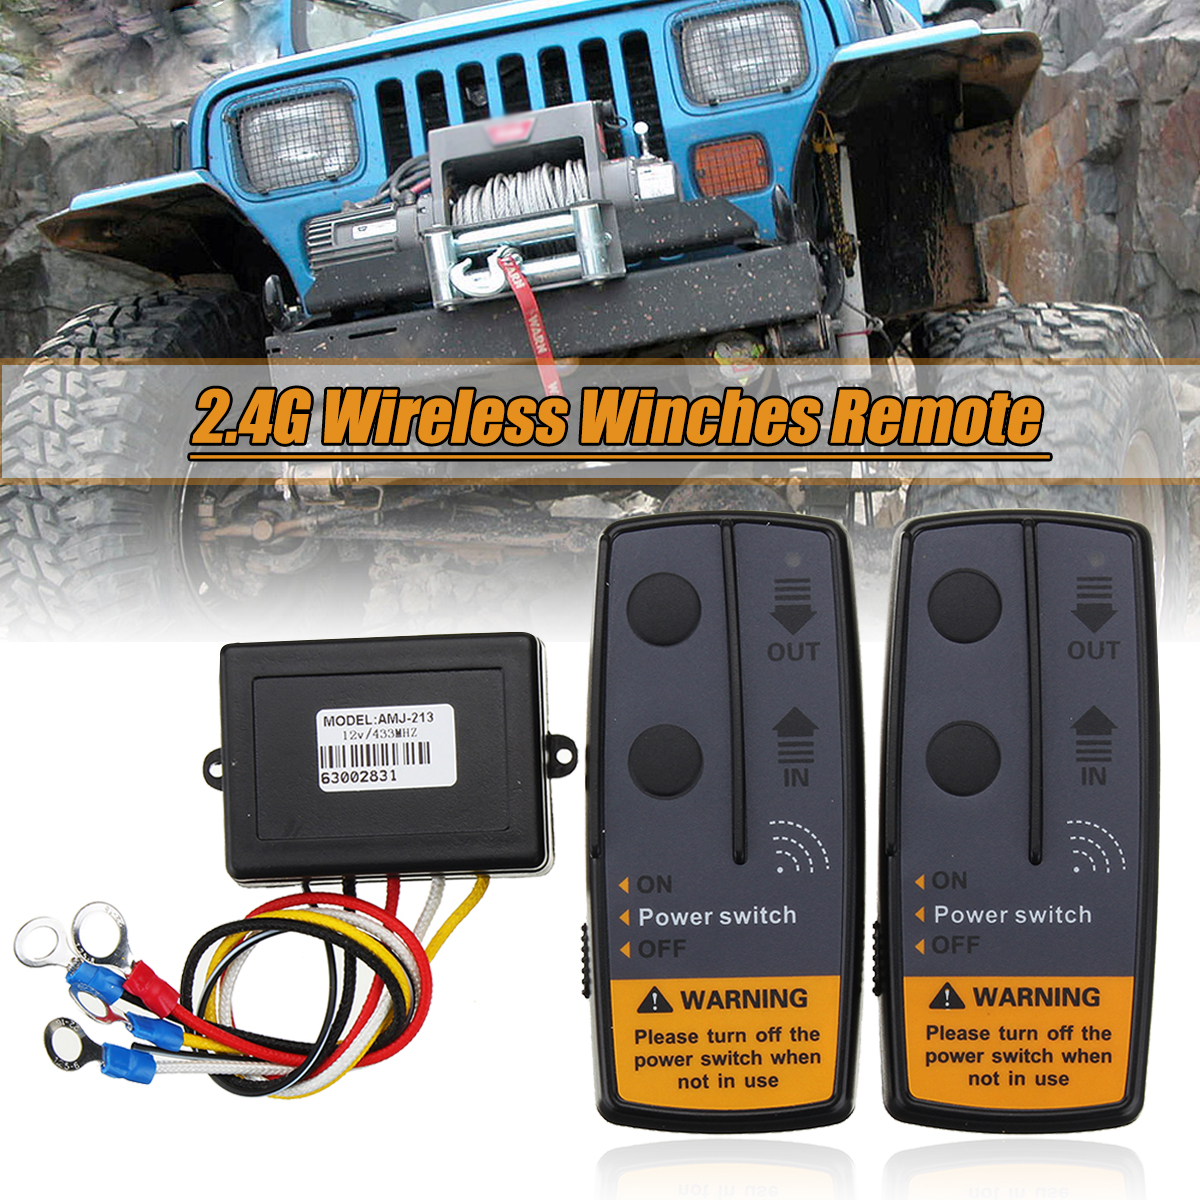 2.4G Digital Wireless Winches Remote Control Recovery Kit For Jeep SUV Truck